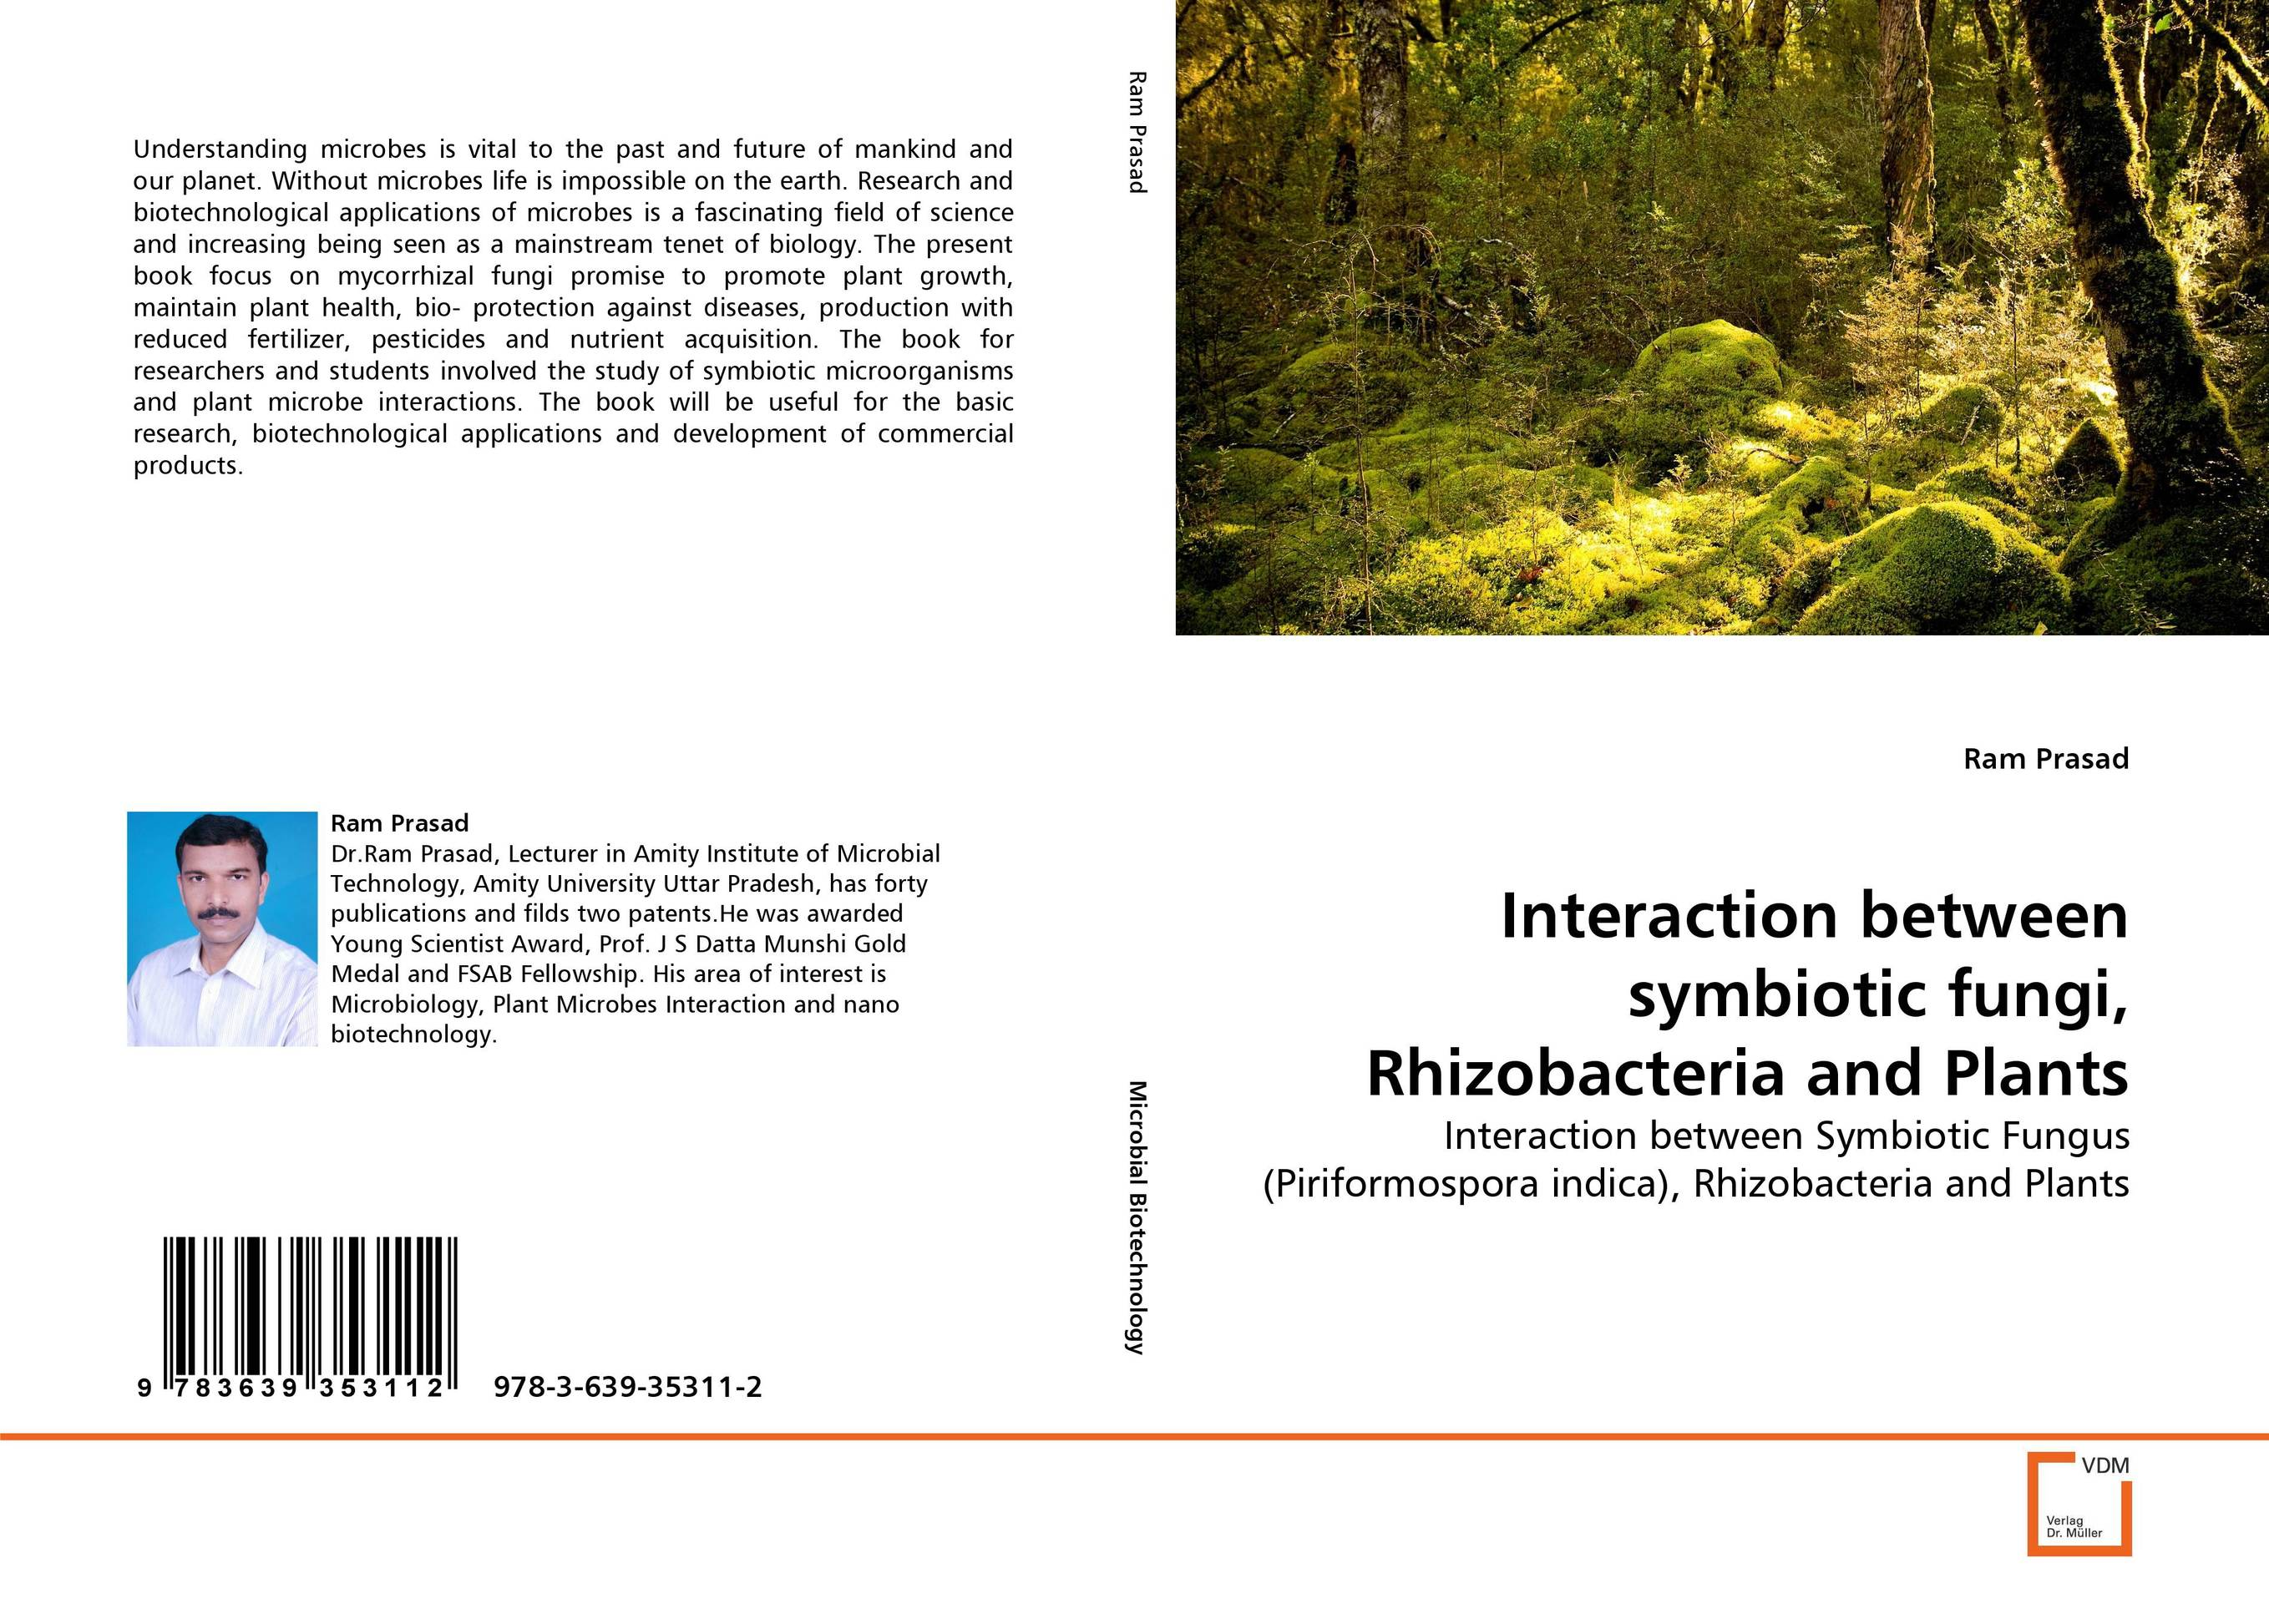 Interaction between symbiotic fungi, Rhizobacteria and Plants manisha sharma ajit varma and harsha kharkwal interaction of symbiotic fungus with fenugreek